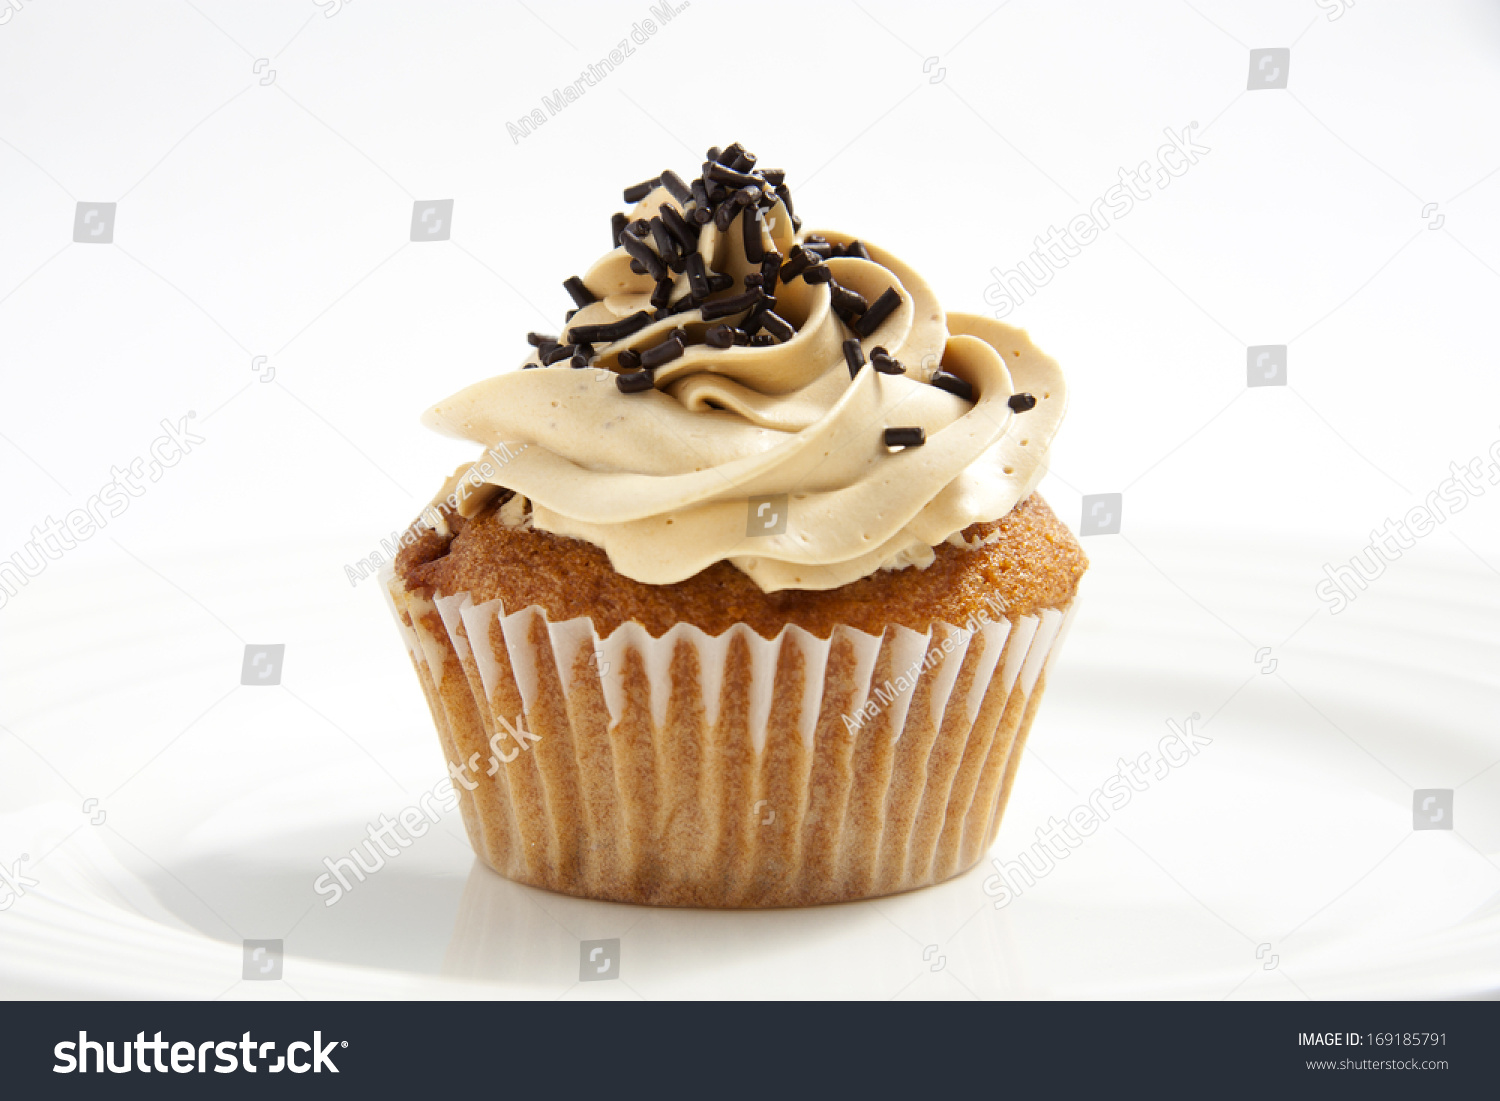 Homemade Cupcake With Toffee Frosting And Chocolate Sprinkles Stock ...